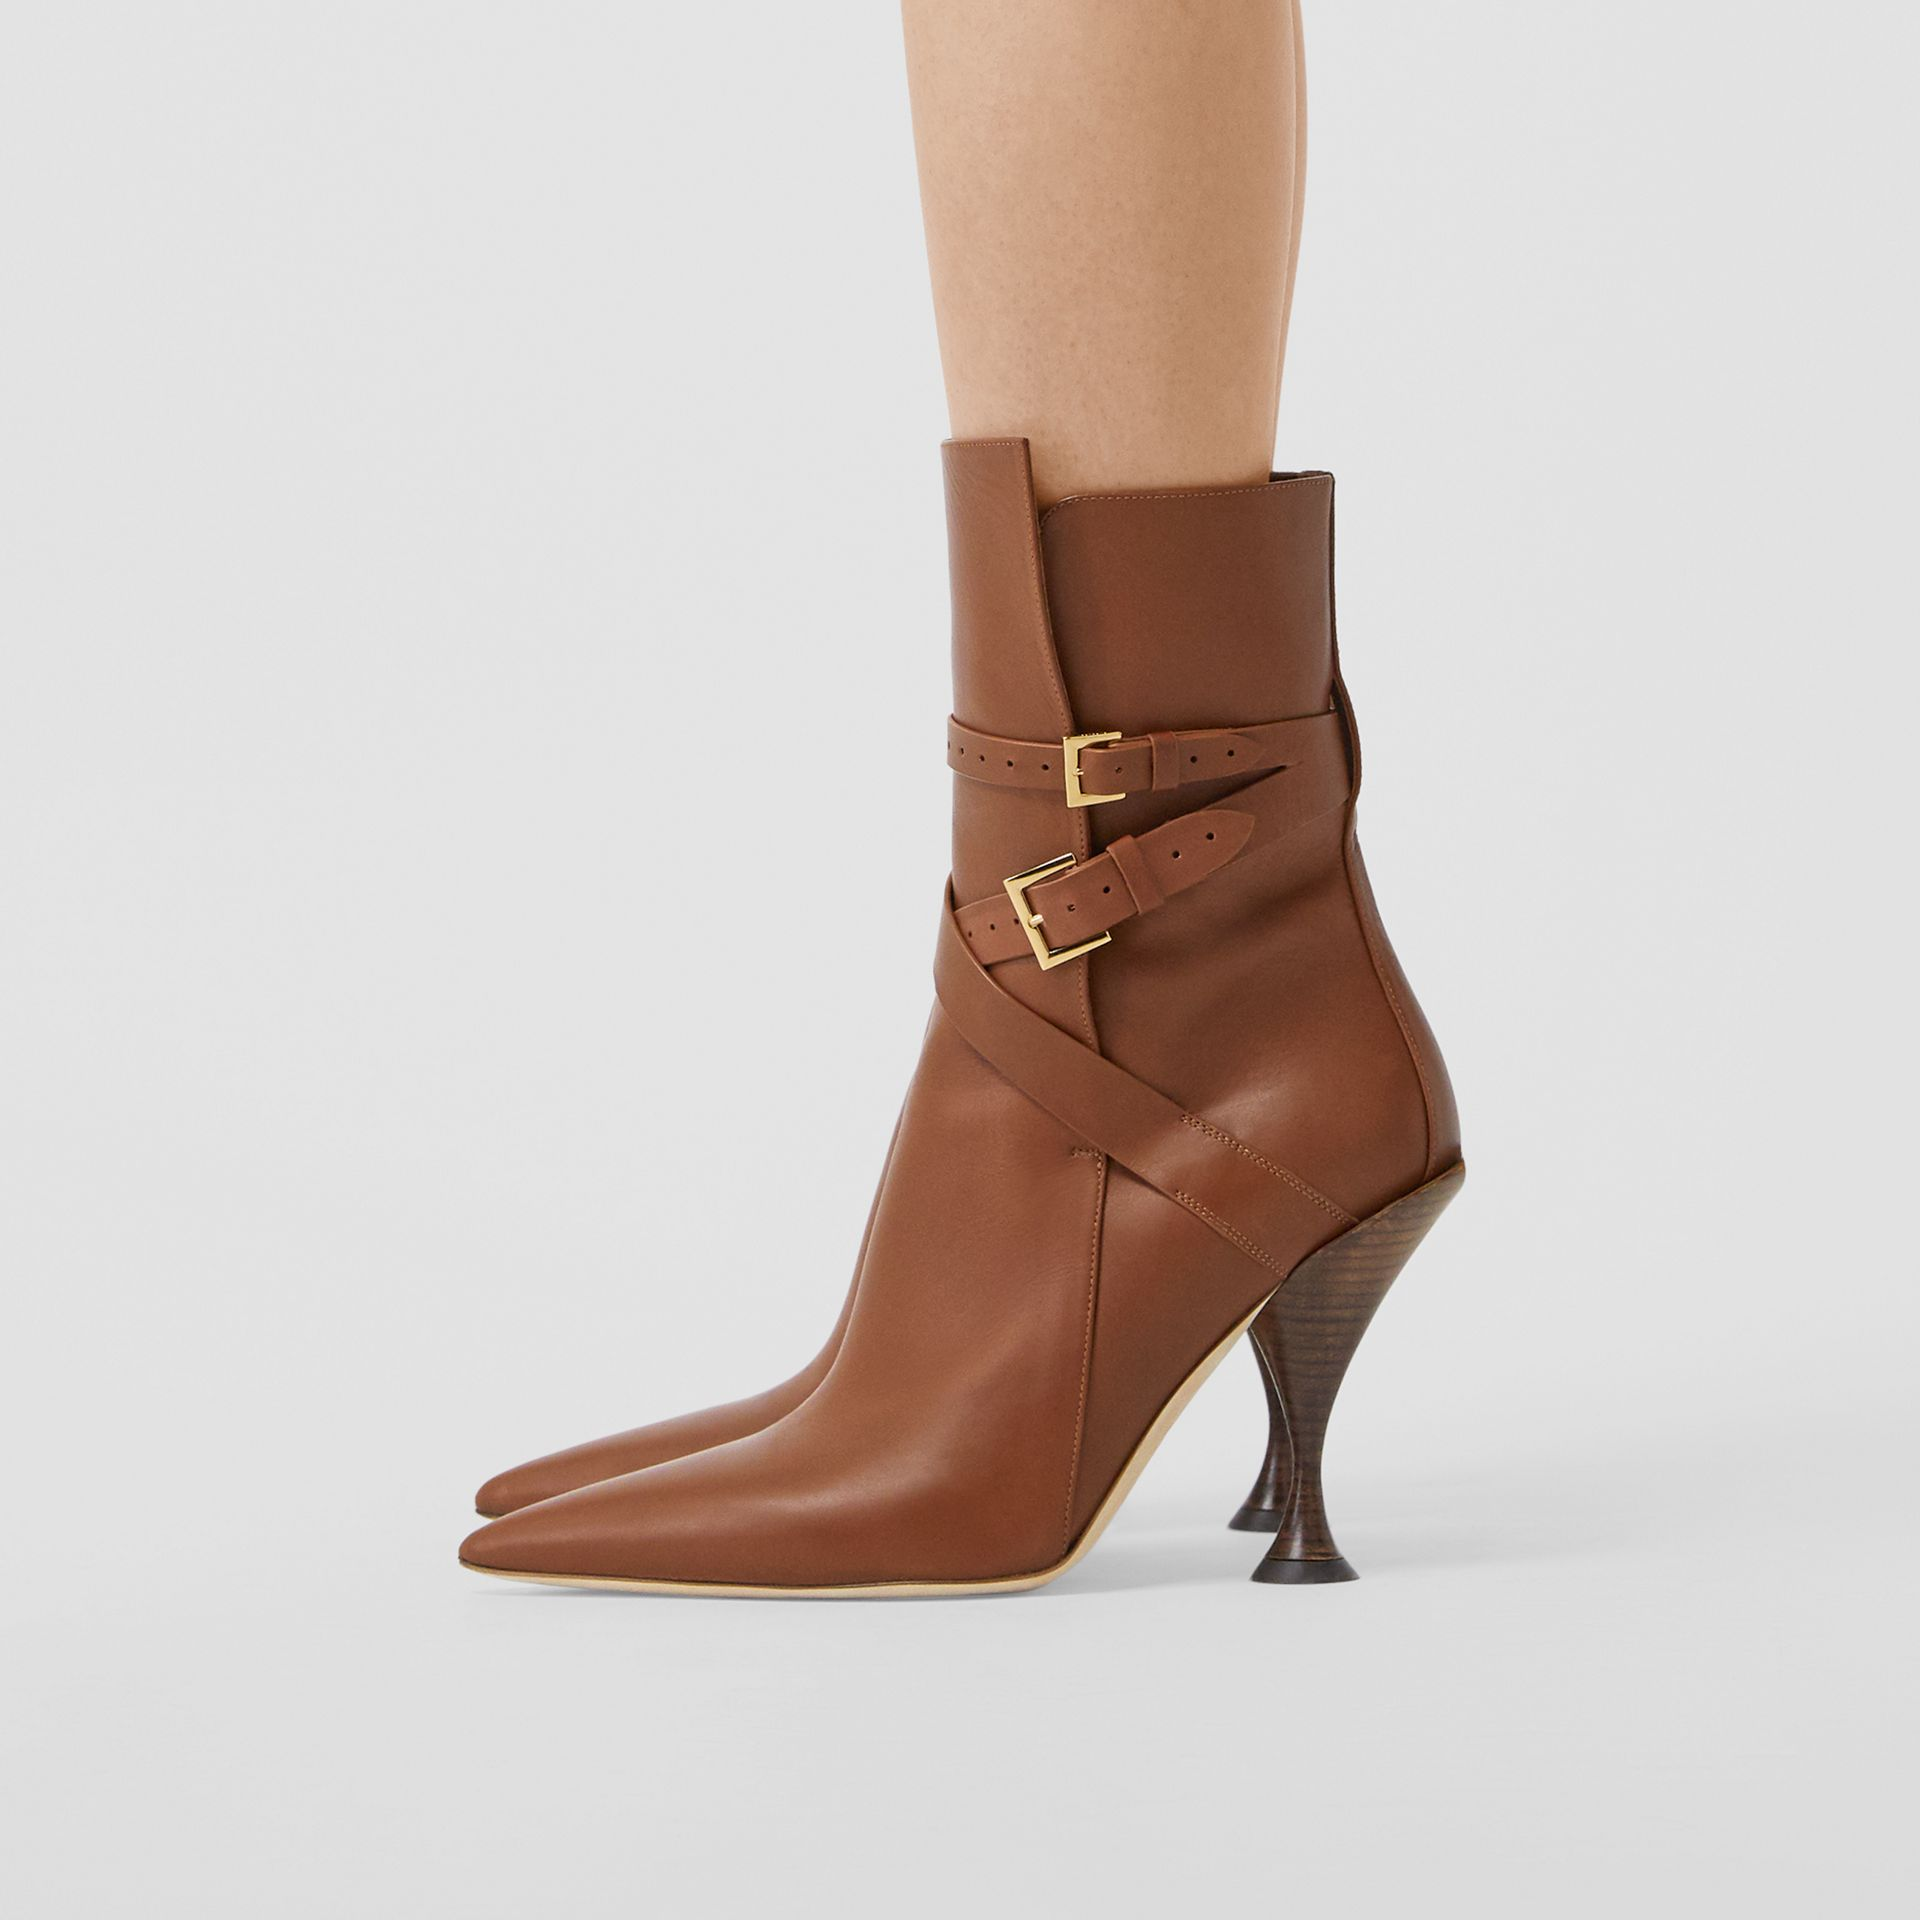 Bottines en cuir à brides (Hâle) - Femme | Burberry - photo de la galerie 2